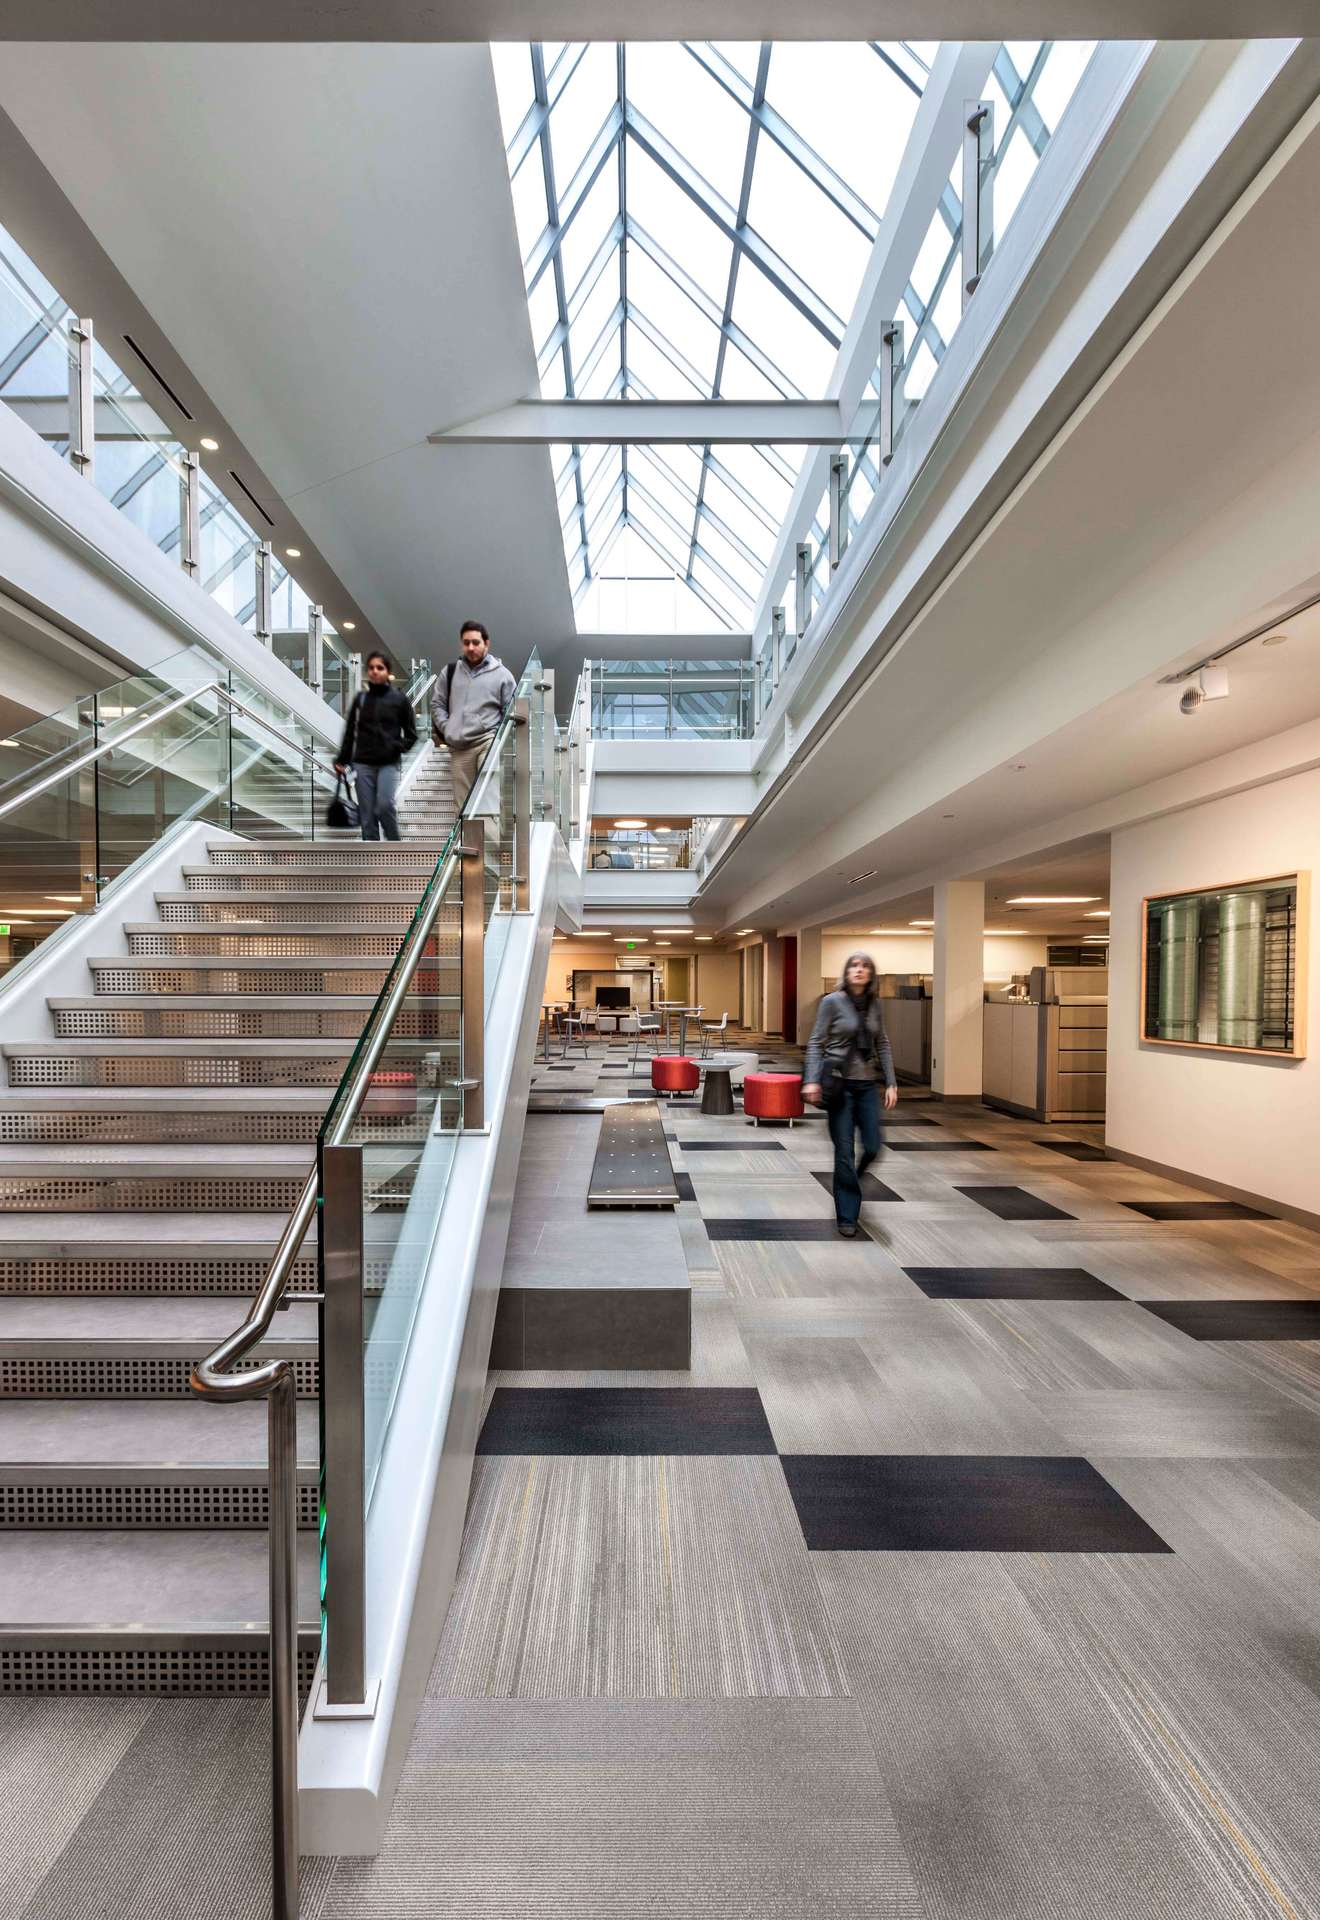 The large skylight illuminates the space with natural light at the CPG Corporate Office in Shoreview, Minnesota, by HCM Architects.